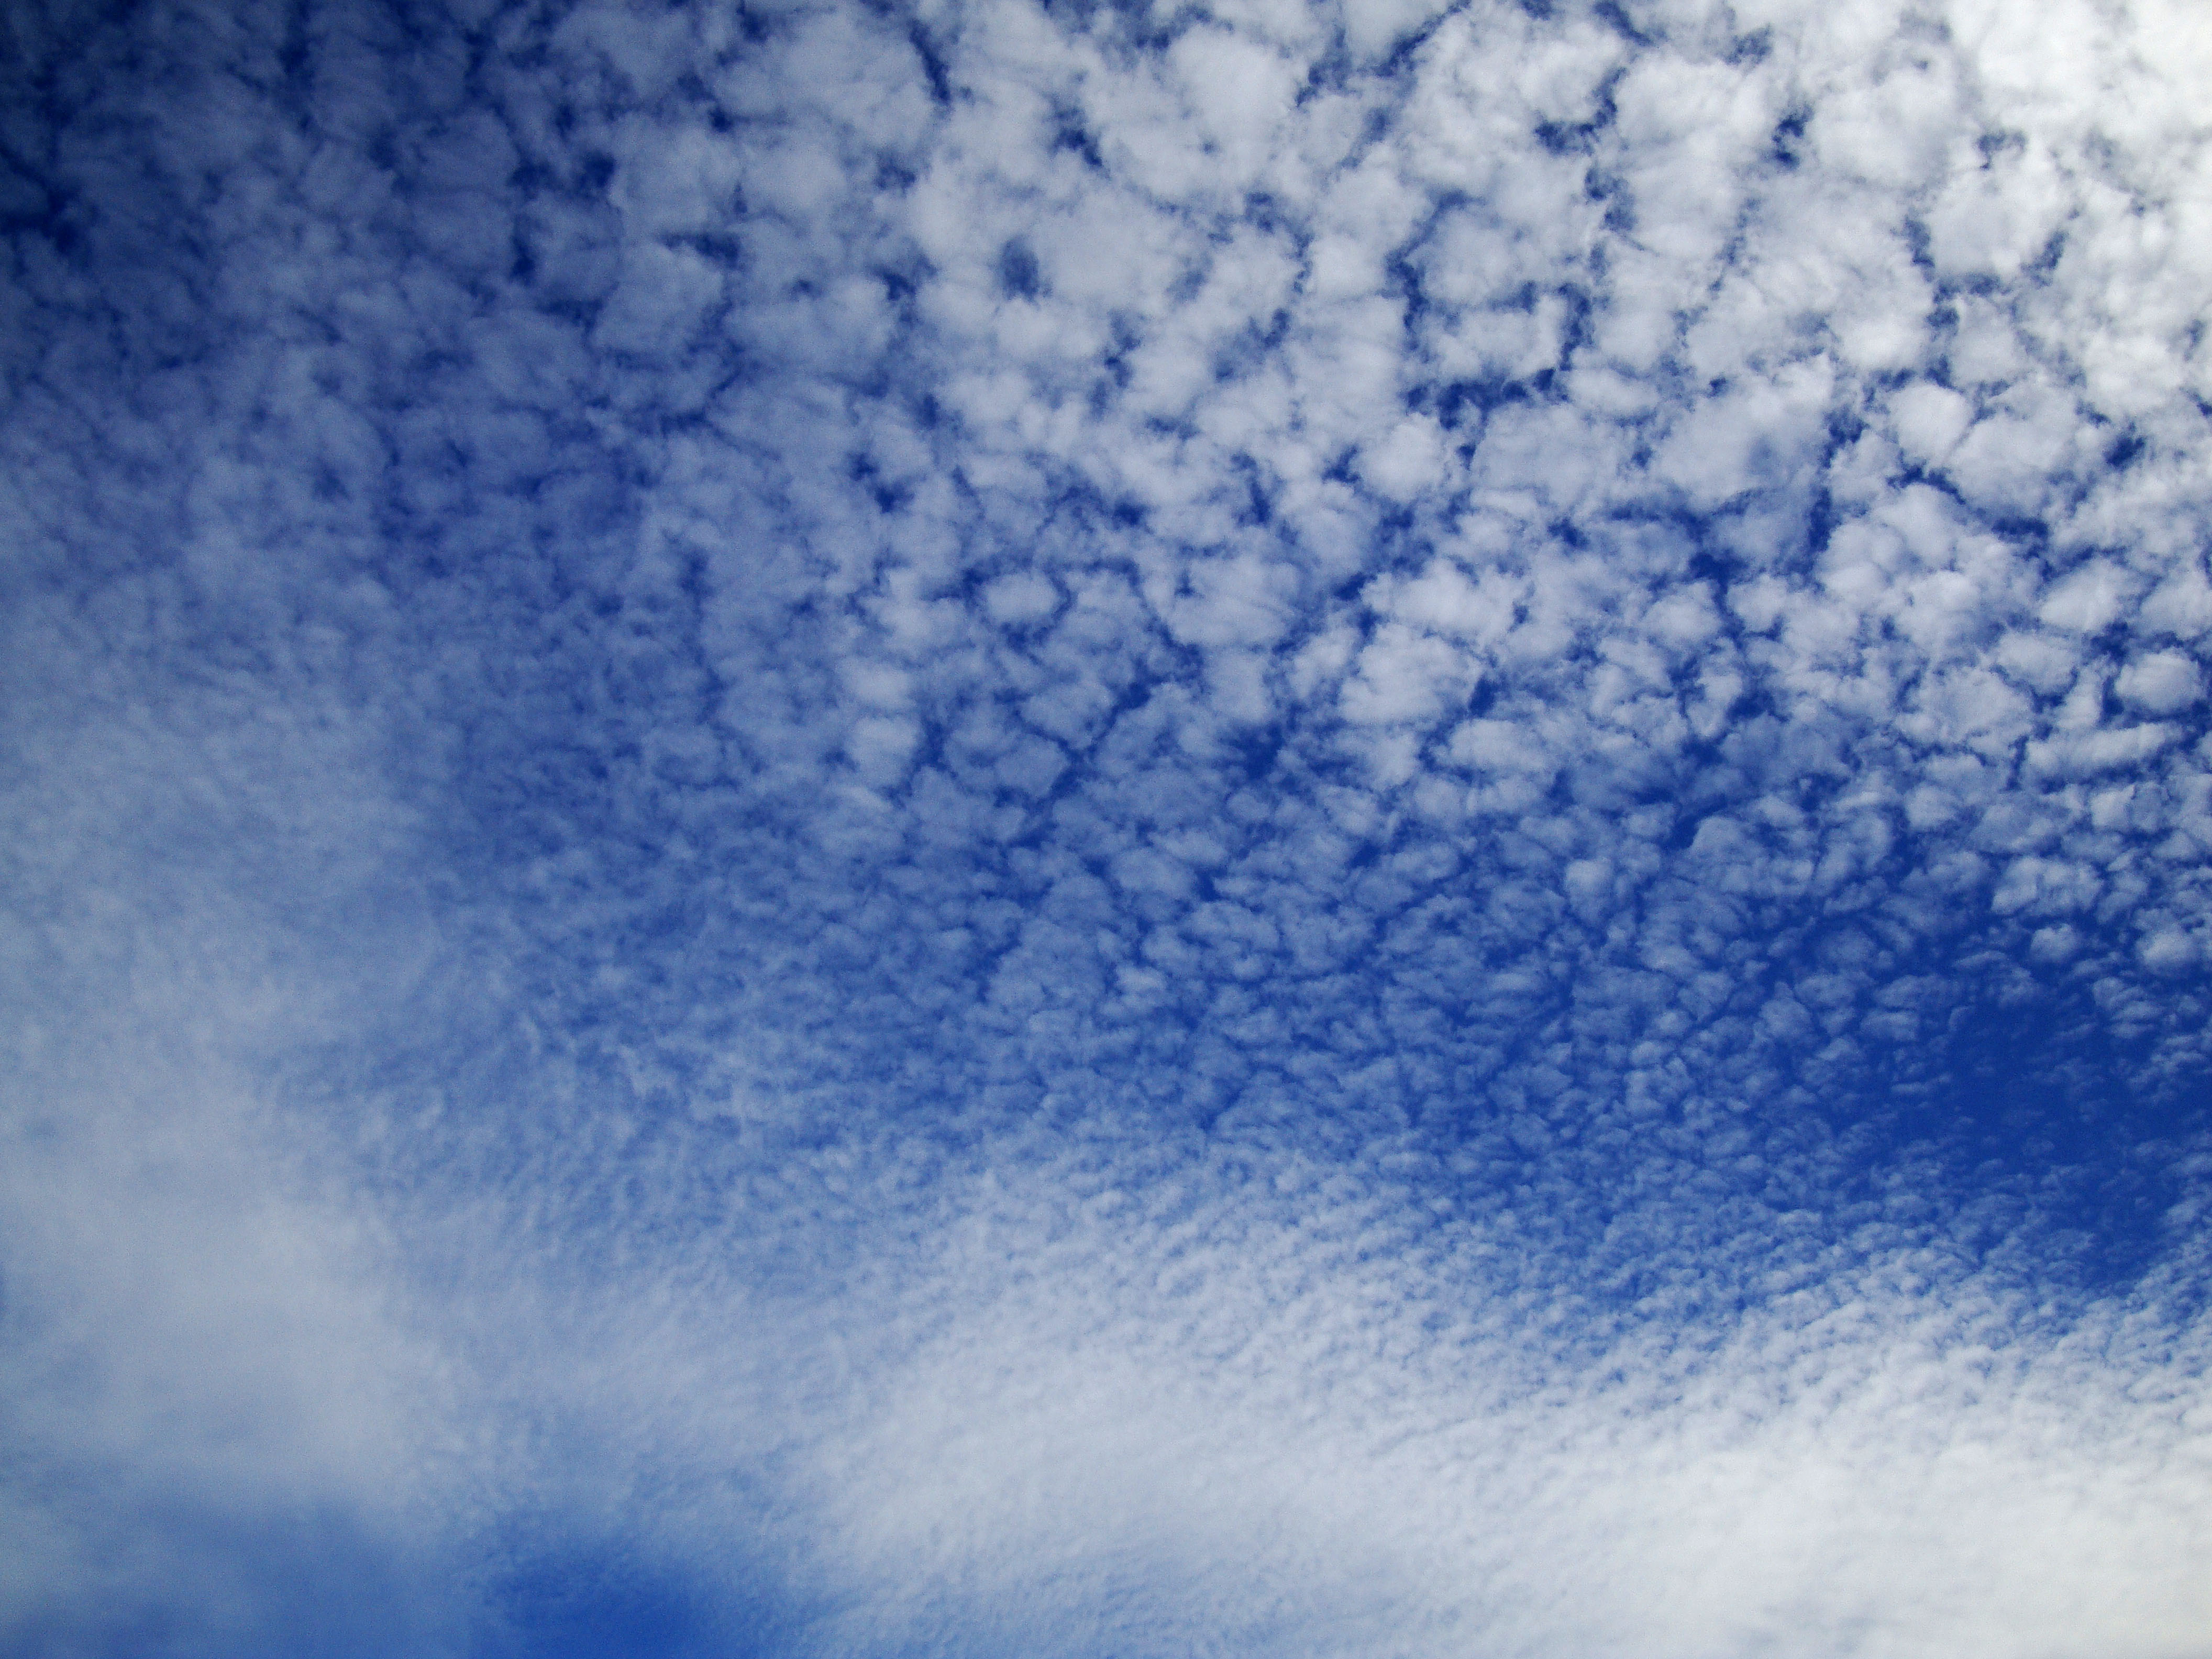 Cirrocumulus Clouds Formations Sky Storms Weather Phenomena 05